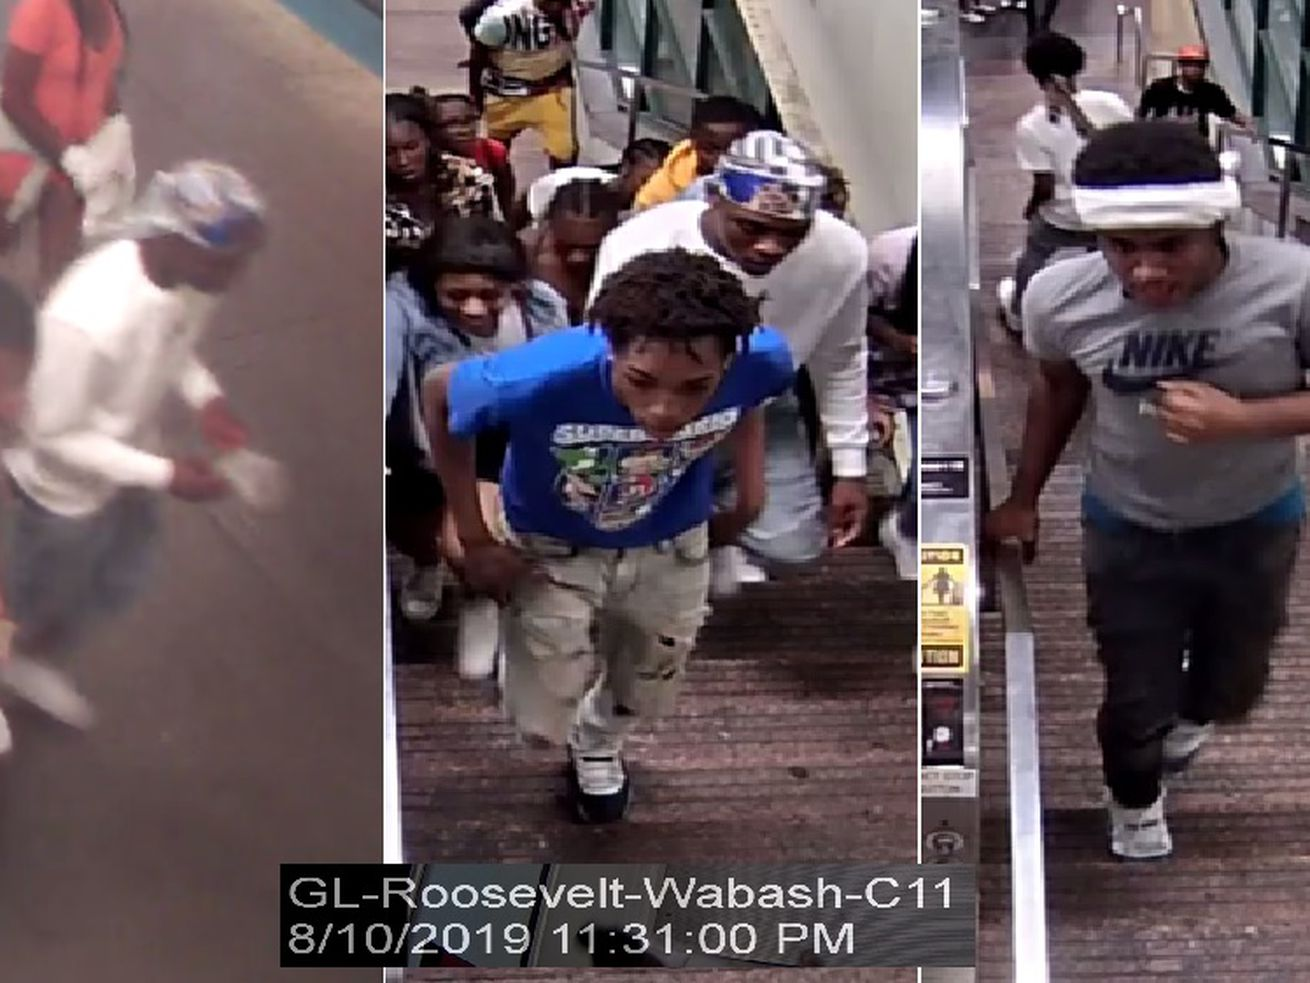 Police release images of aggravated battery and robbery.